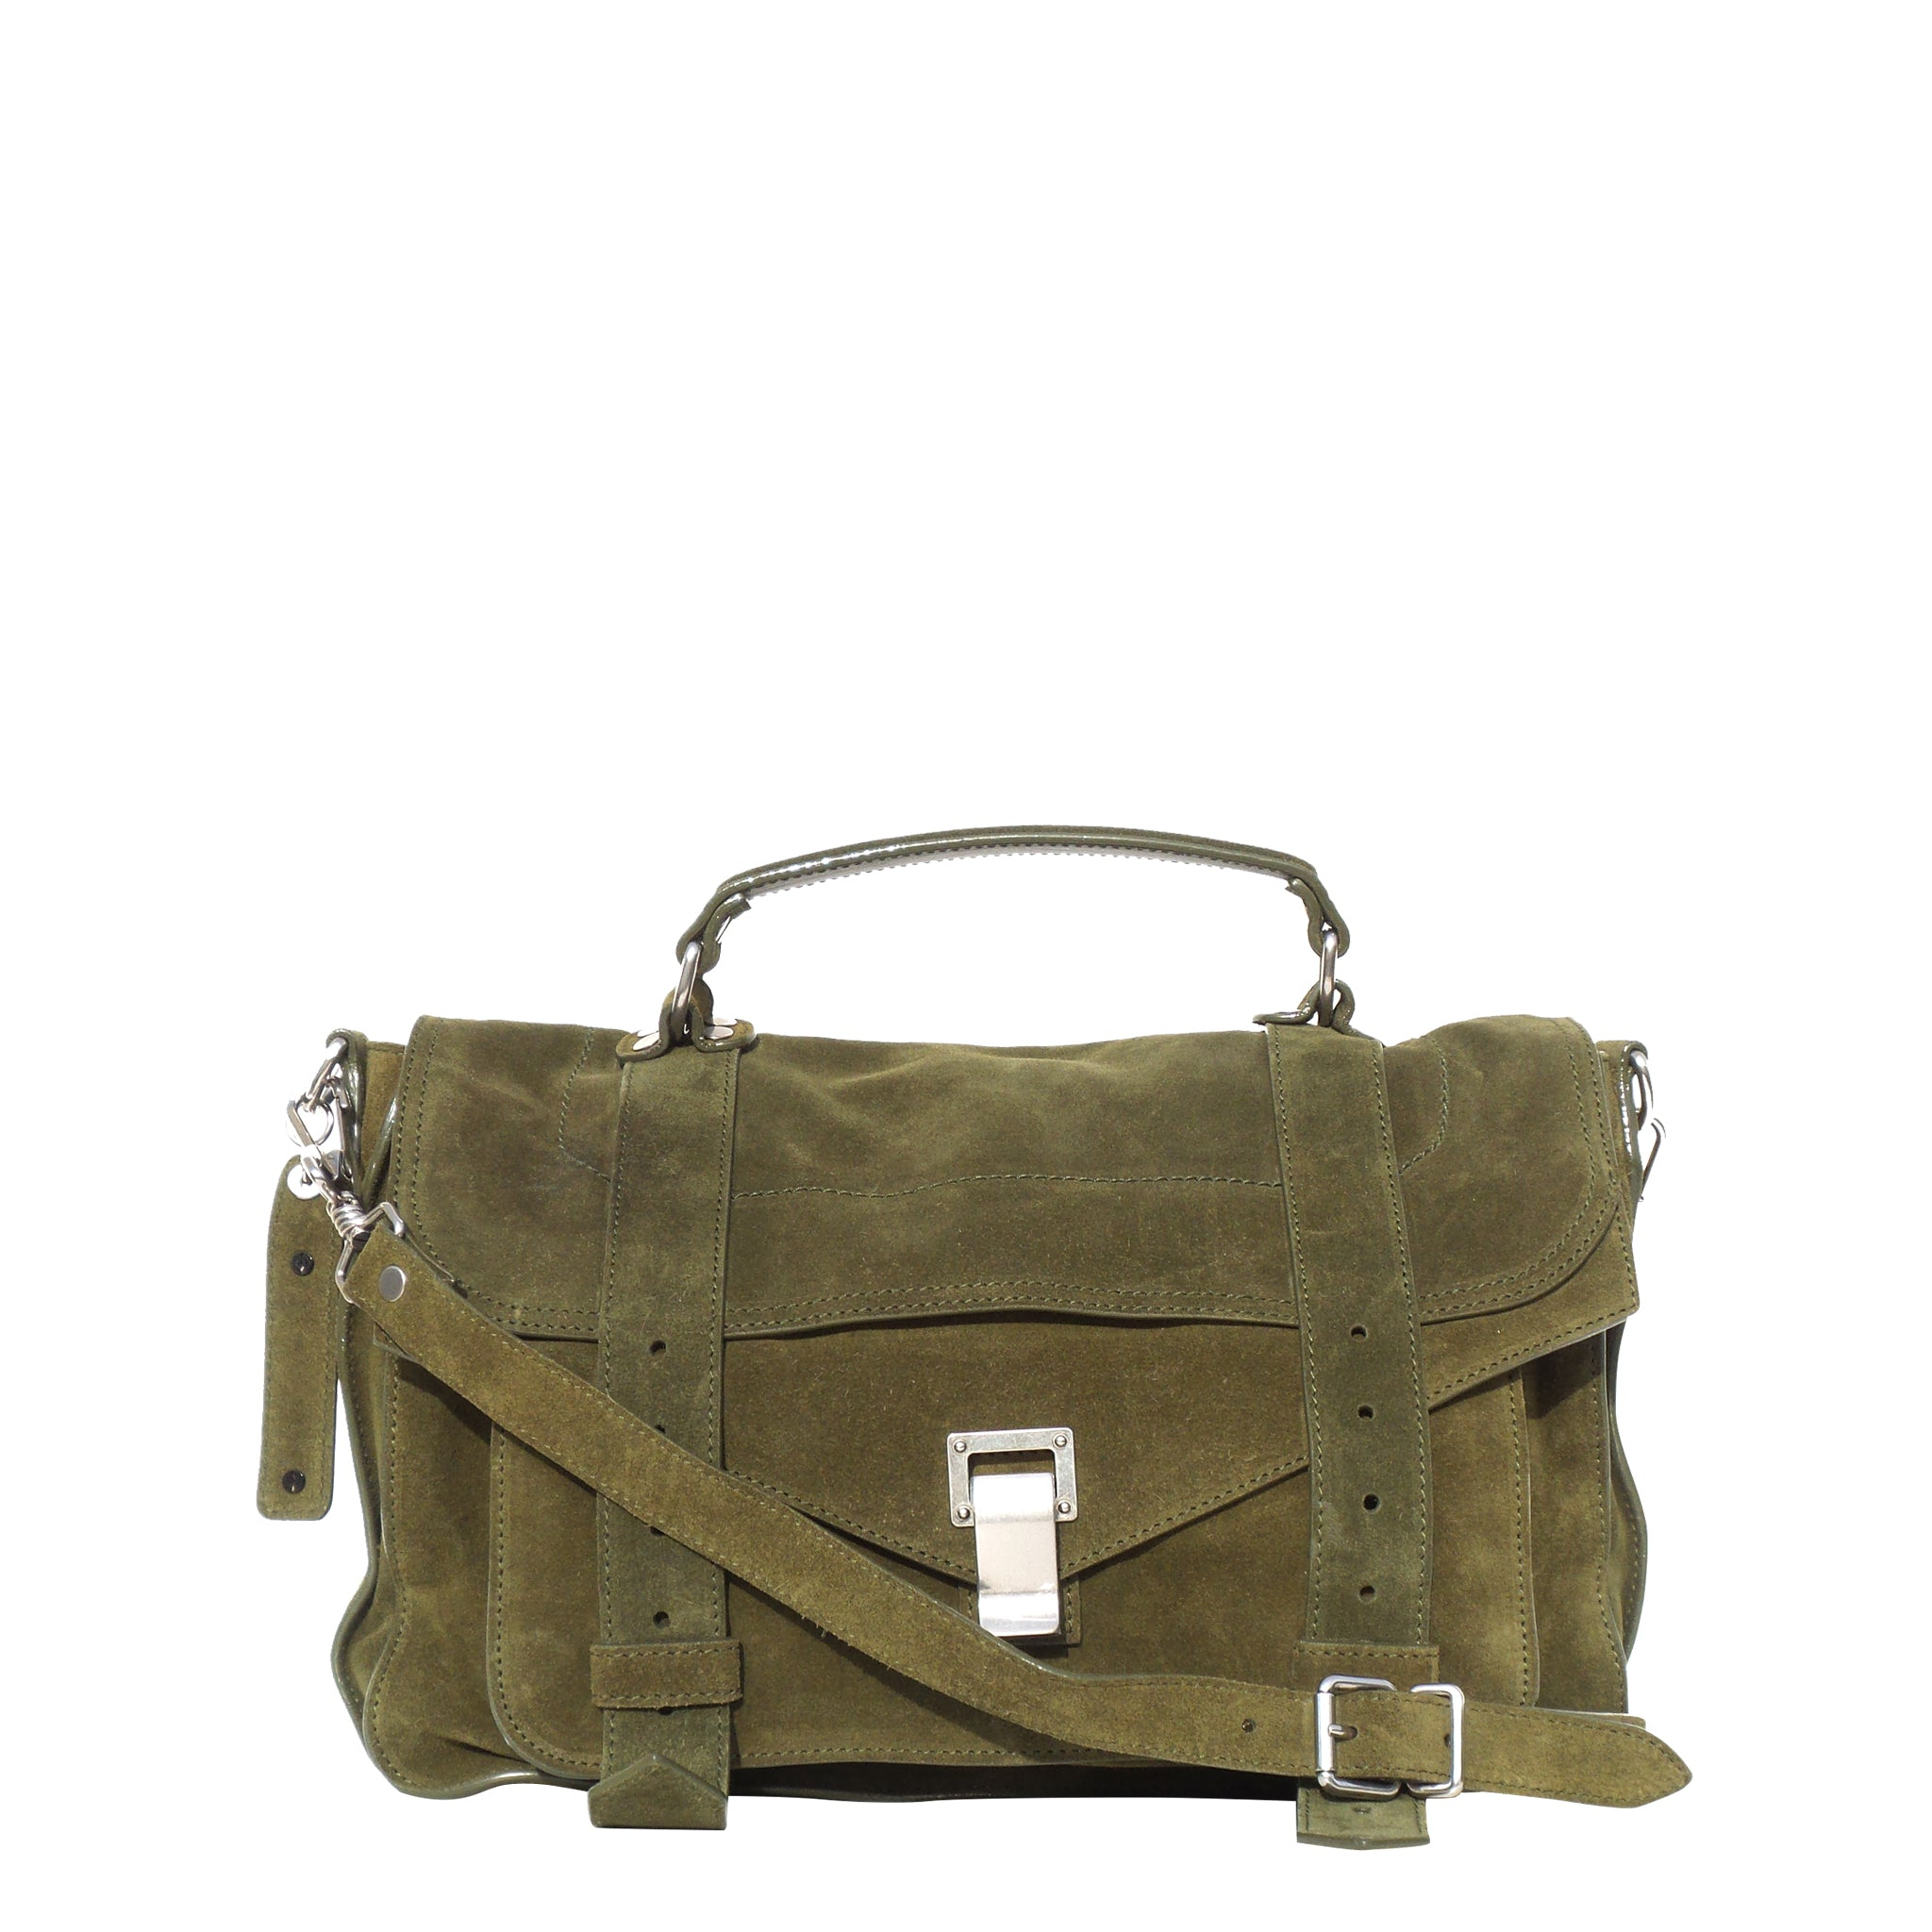 4070d7871d16 PROENZA SCHOULER Olive Green Suede Medium PS1 Messenger Bag EC – Encore  Resale.com